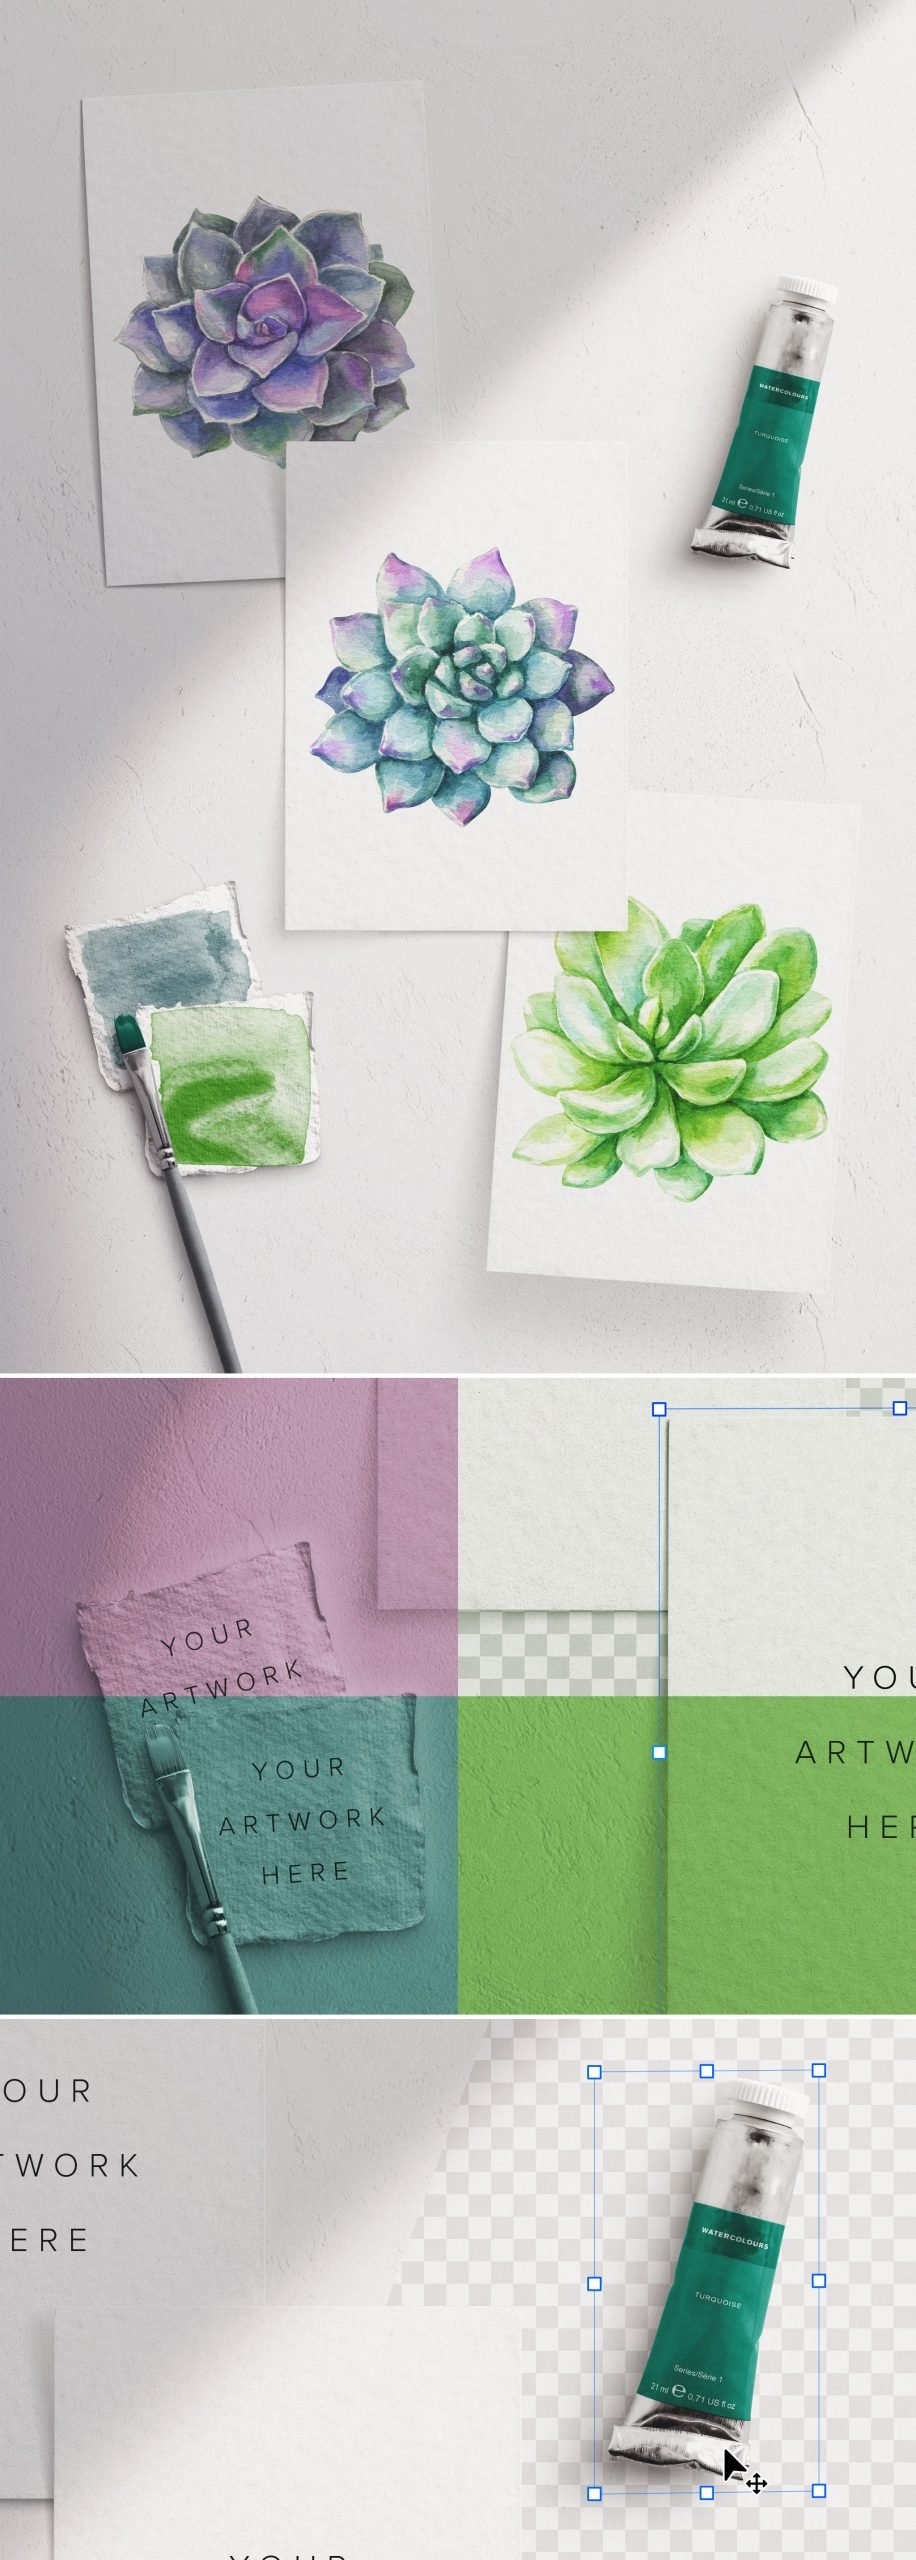 watercolor mockup scene creator 5 preview1 scaled